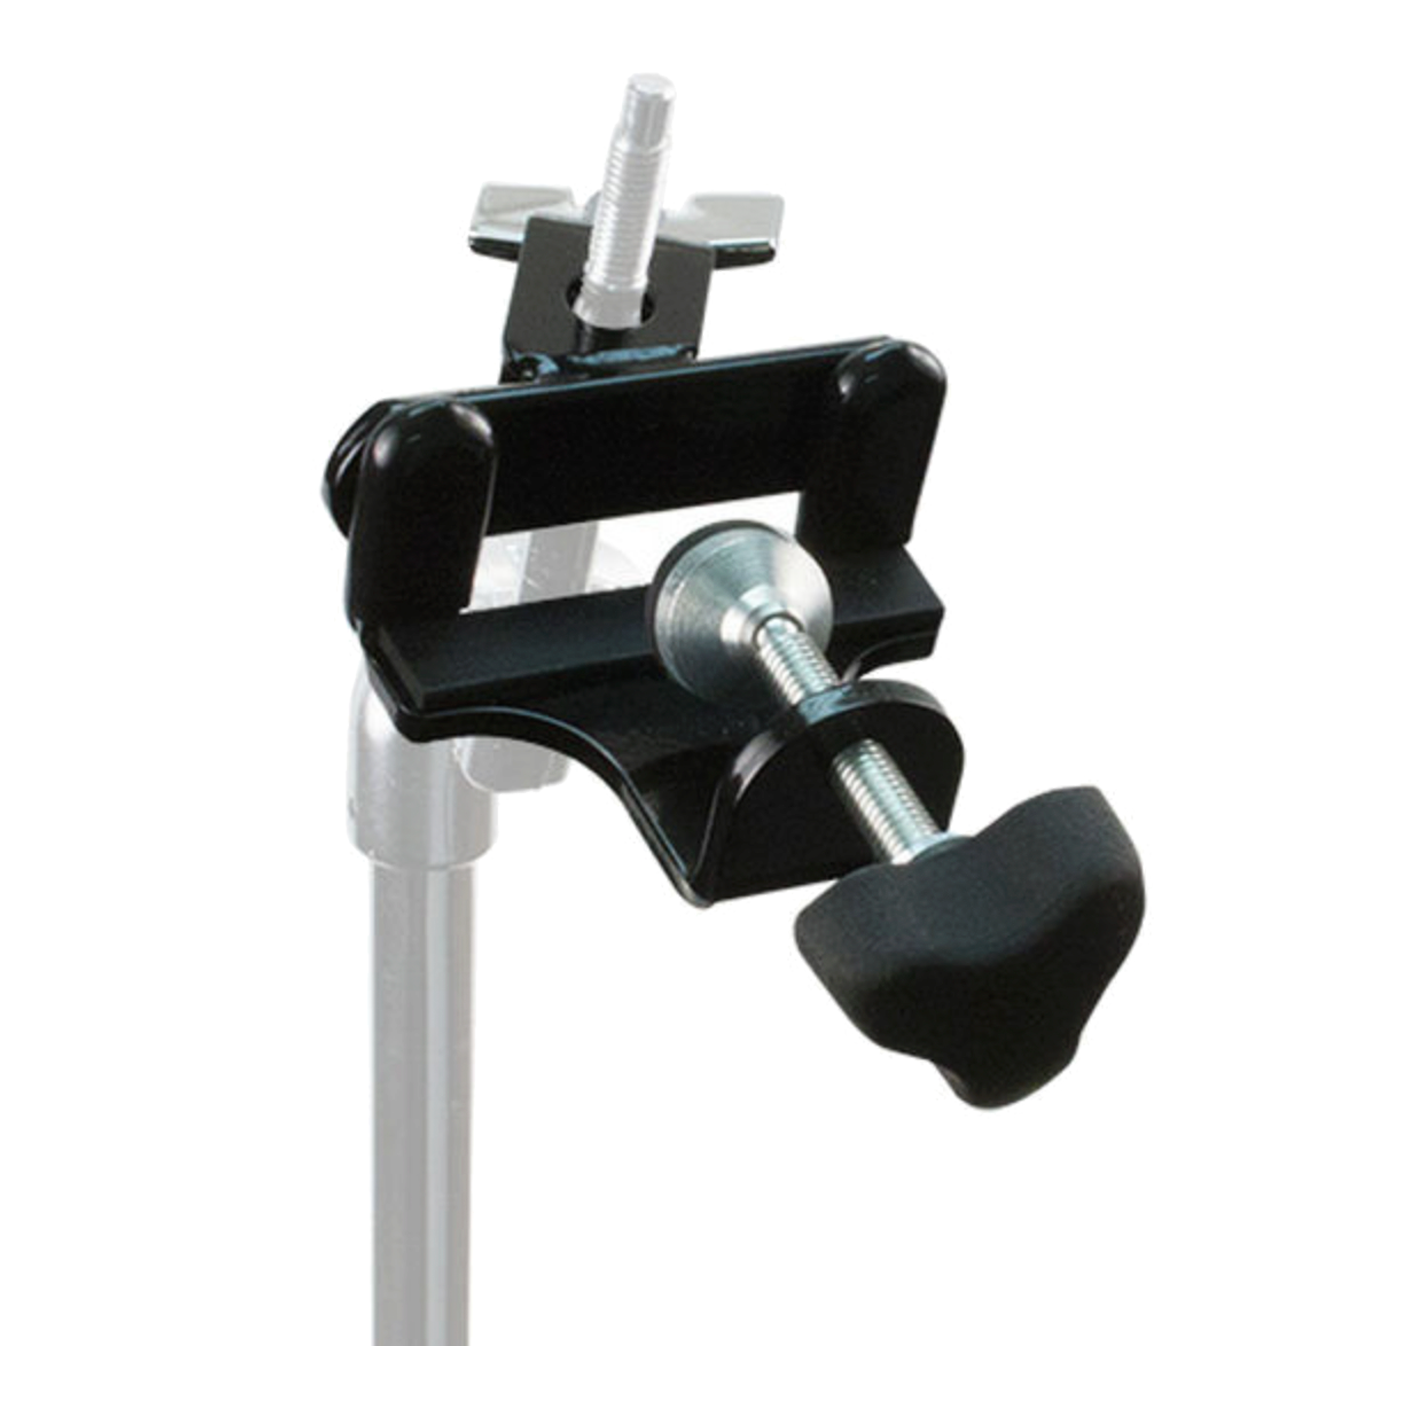 Black Swamp - OneMount Tambourine Mounting Clamp-Percussion Accessories-Black Swamp-Music Elements